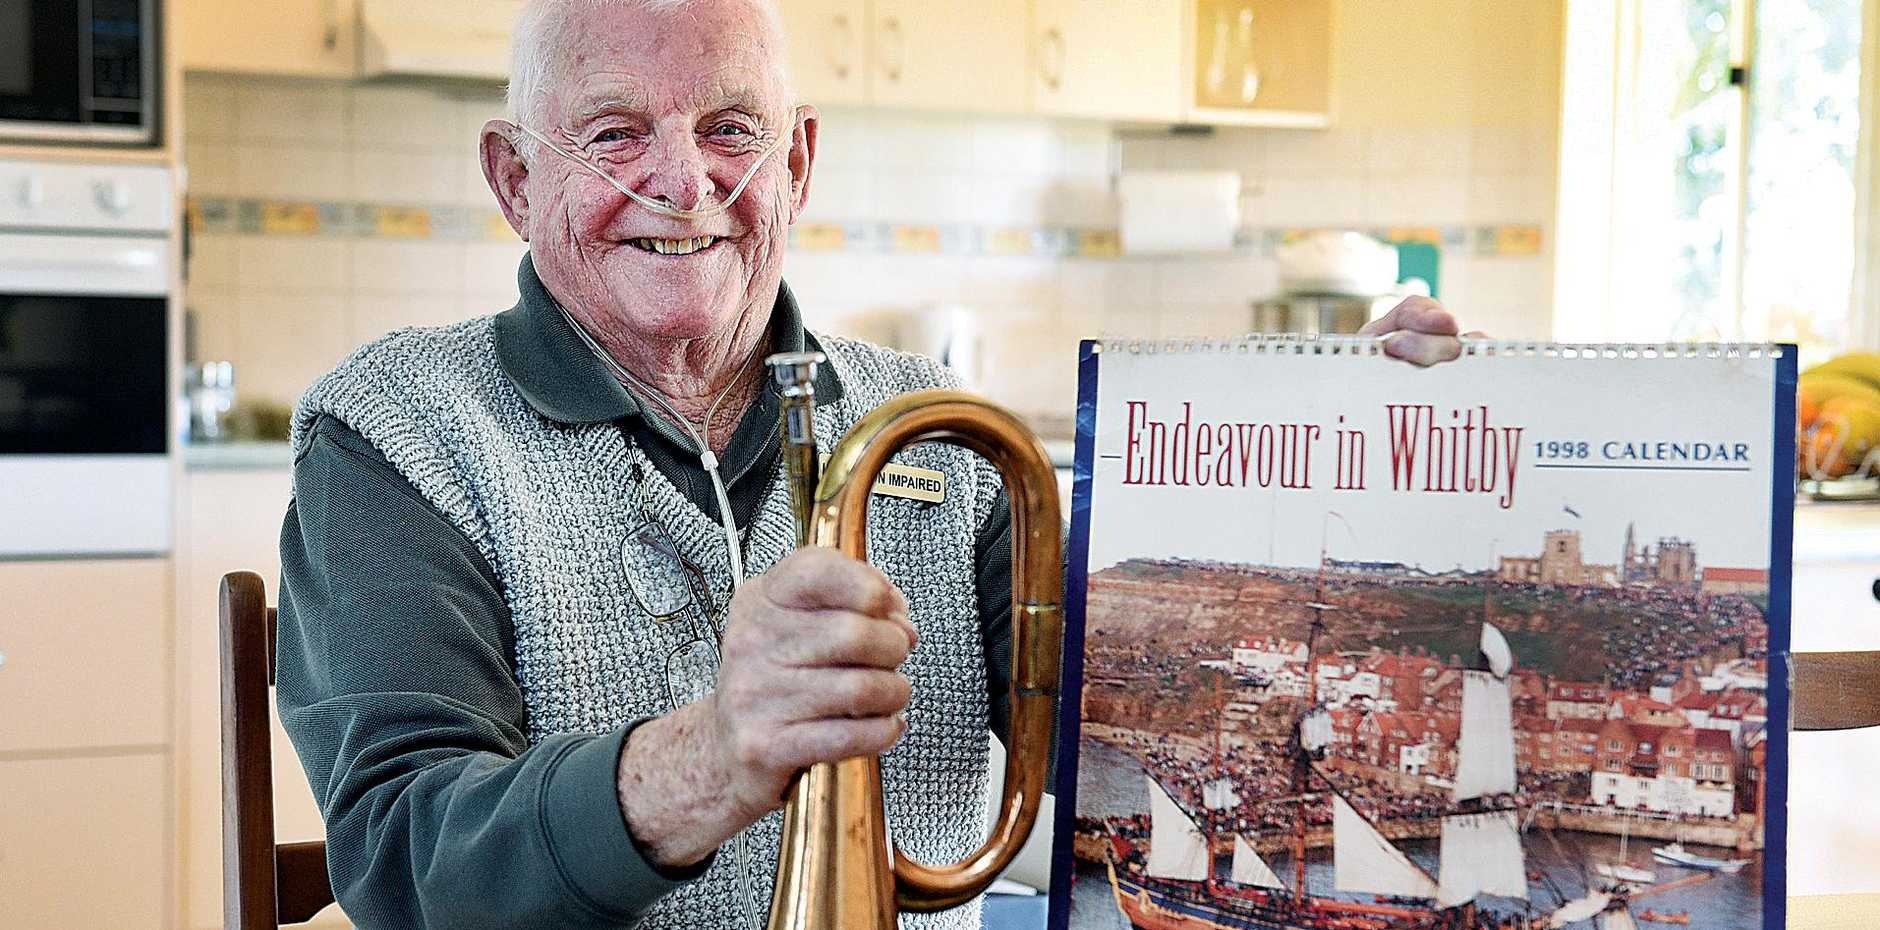 SOUNDS & SEA: Frank Revill with two items which sum up his life - a bugle and an Endeavour calendar.